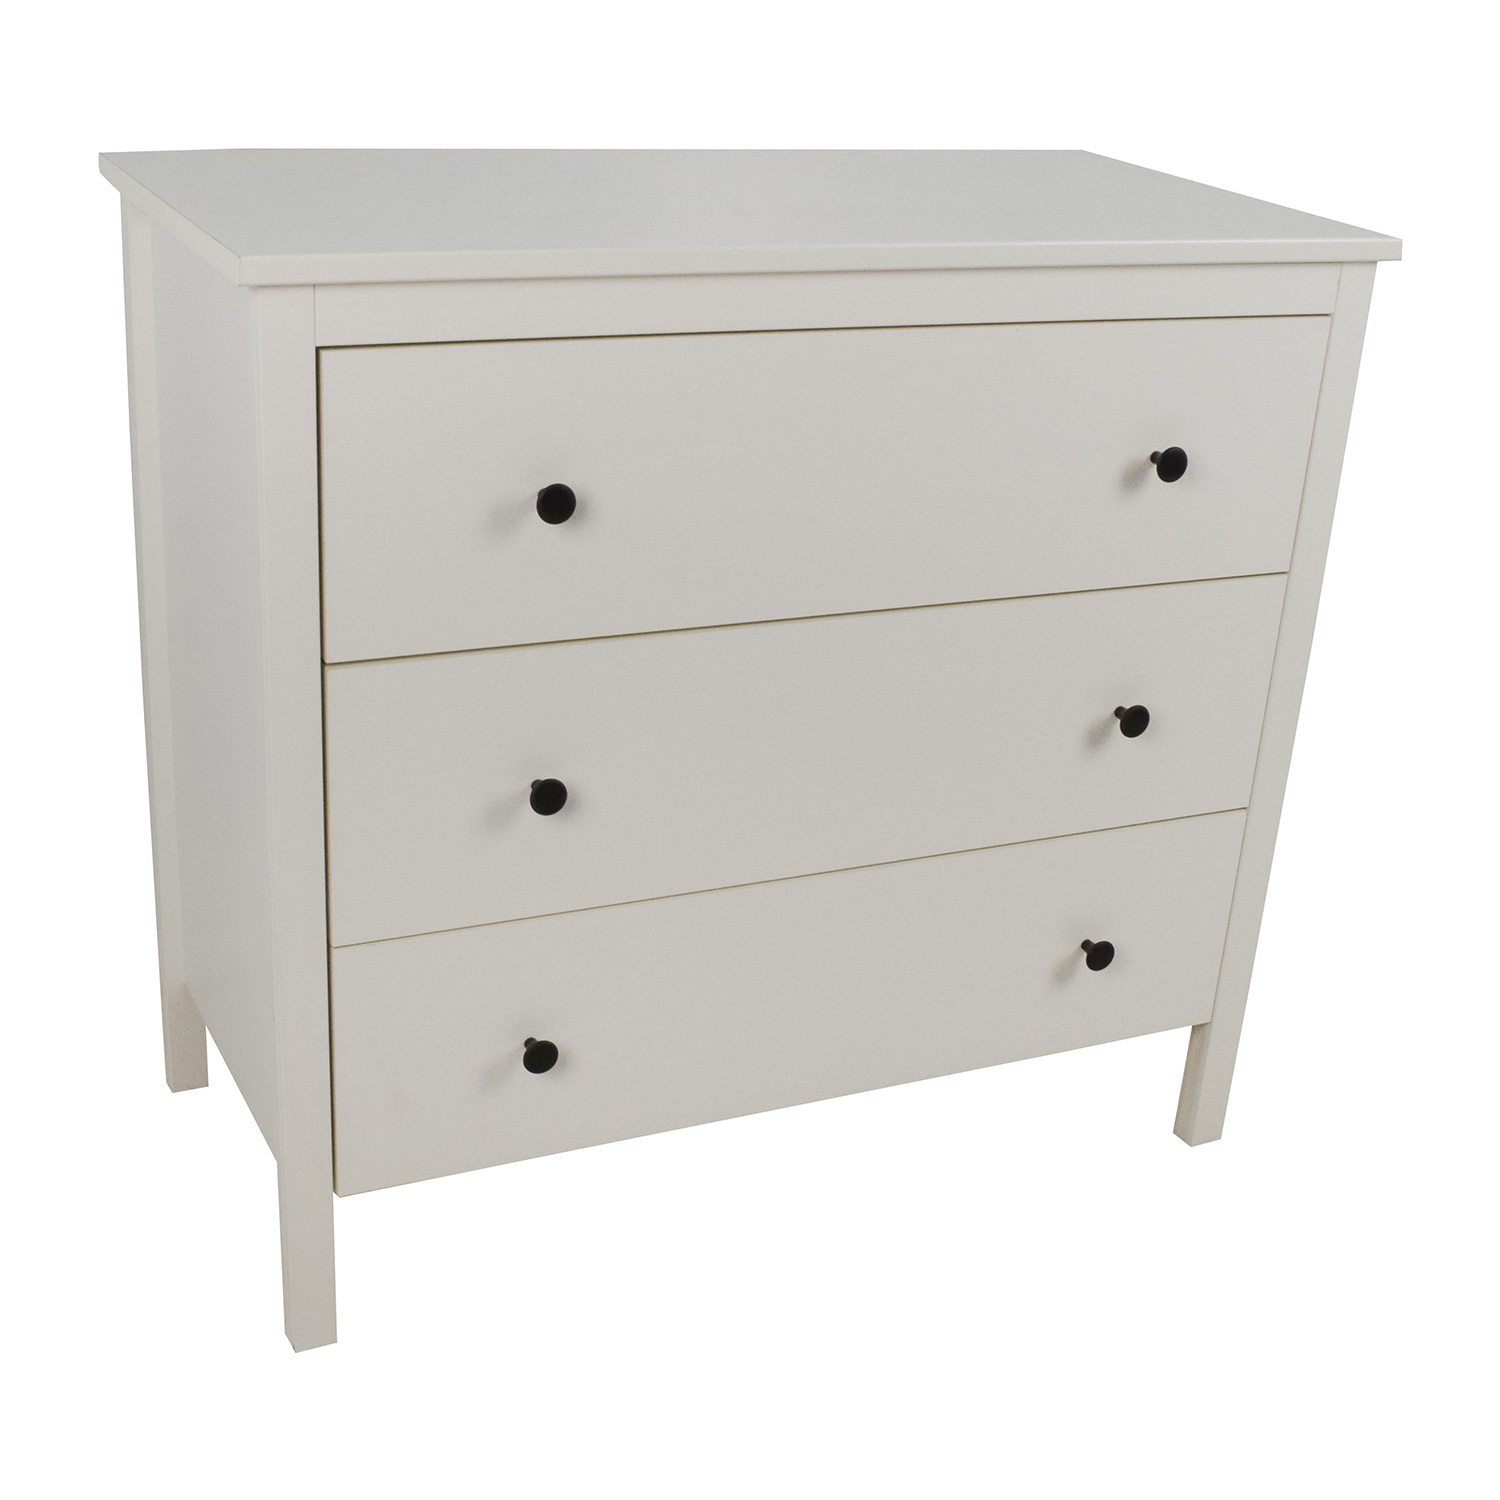 43 off ikea hemnes 3 drawer white dresser storage. Black Bedroom Furniture Sets. Home Design Ideas